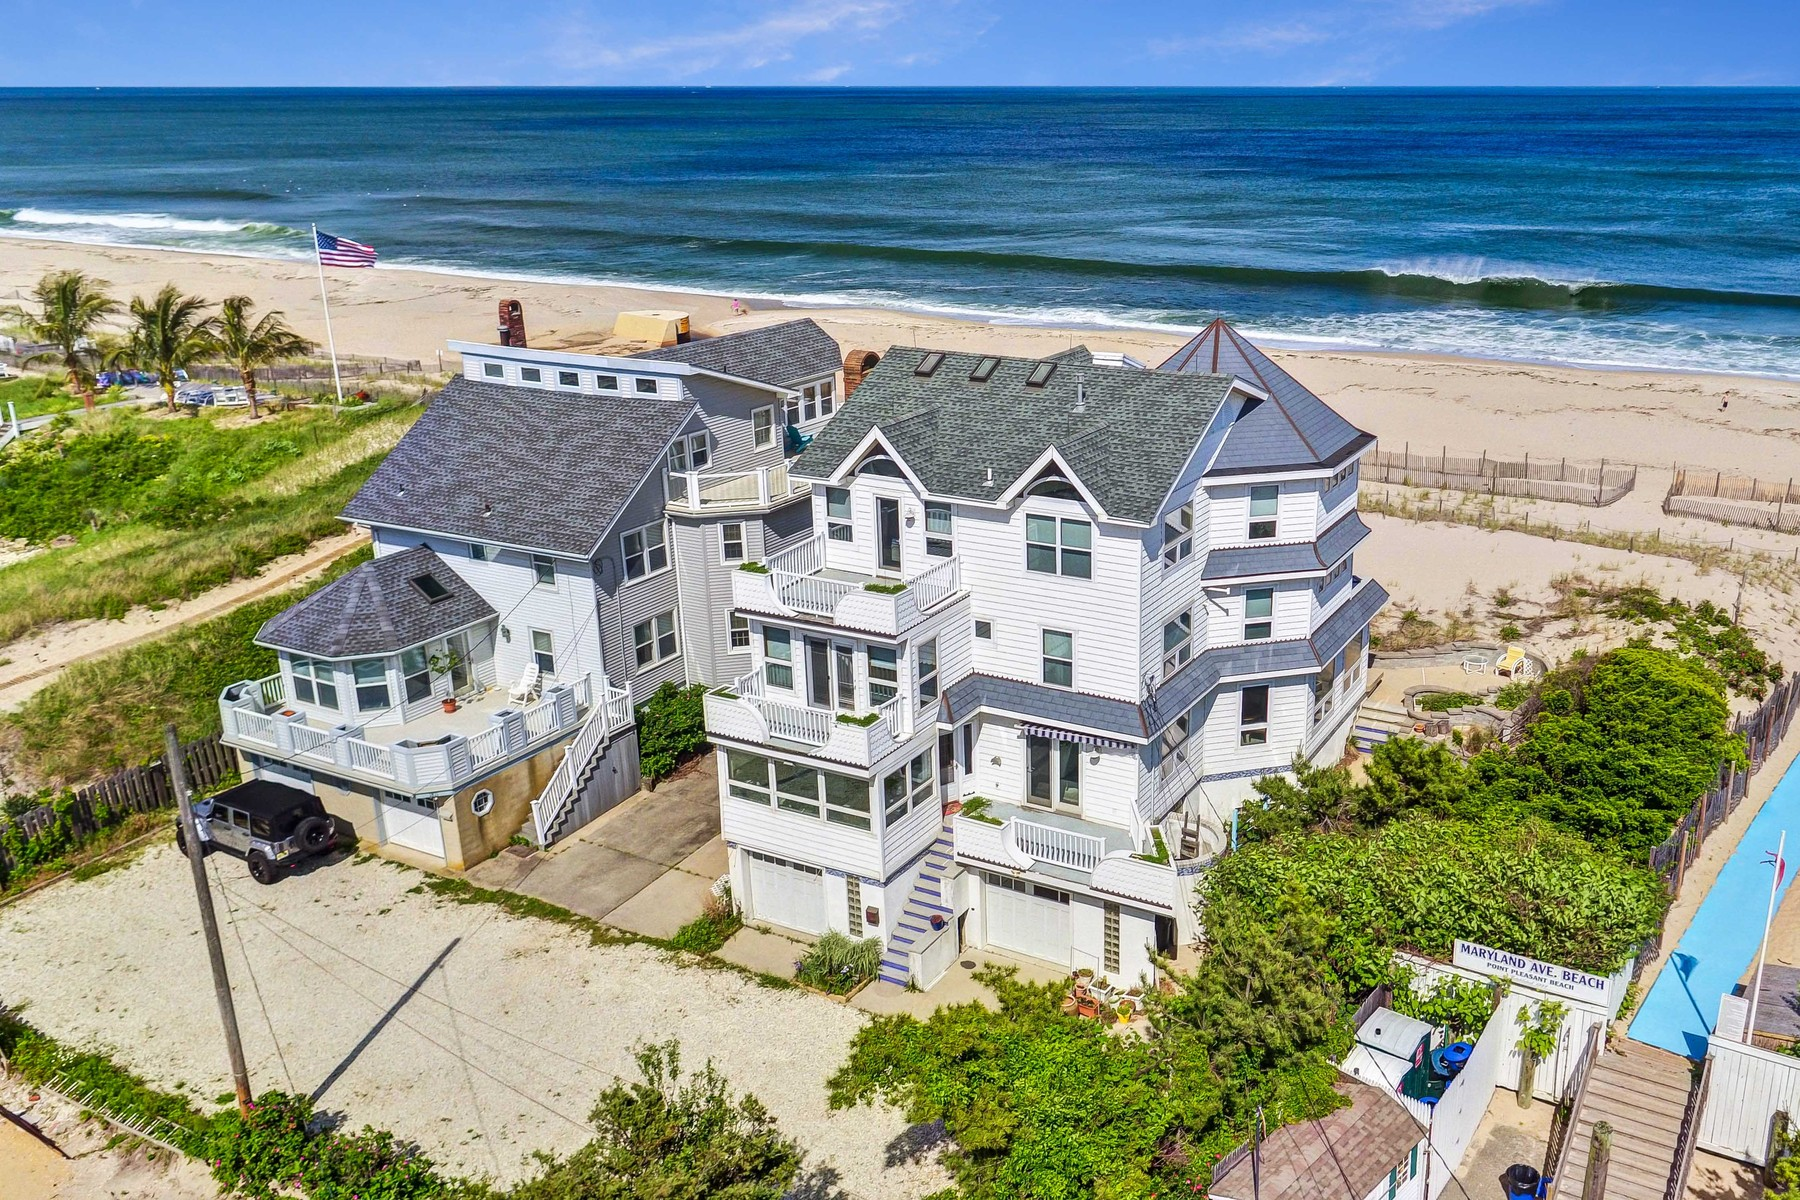 Single Family Home for Sale at Oceanfront Opportunity 1 Maryland Ave, Point Pleasant Beach, New Jersey 08742 United States